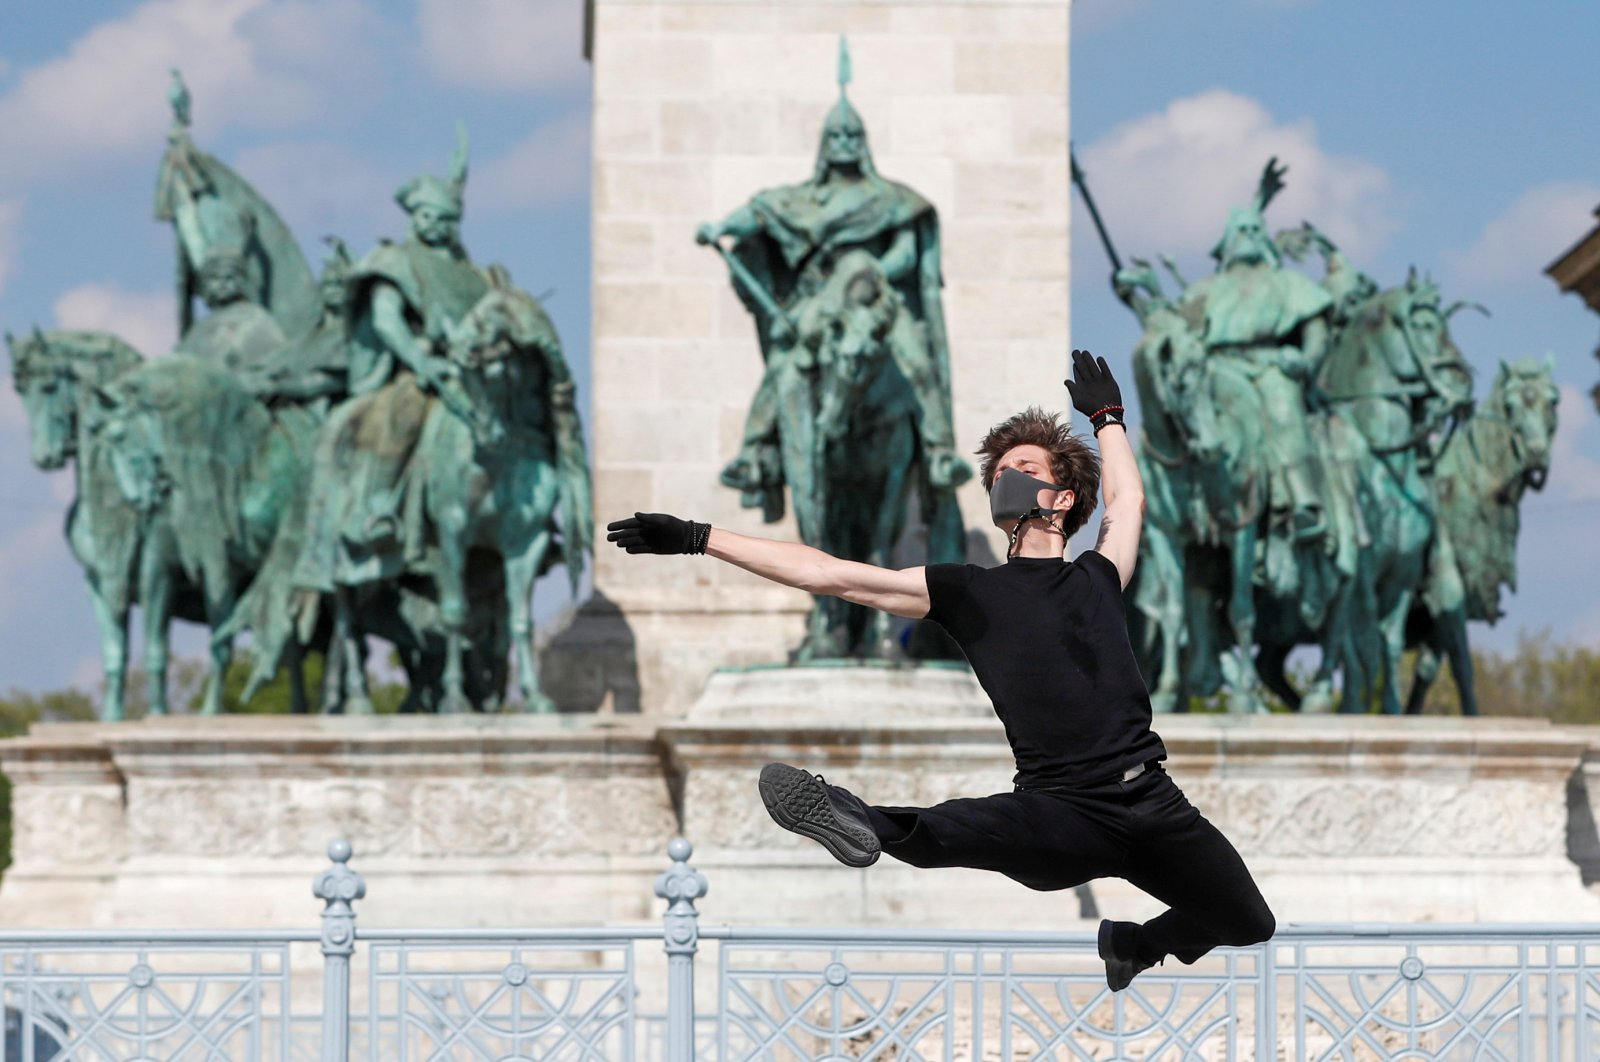 """Hungarian ballet dancer Zsolt Kovacs performs a choreographic piece he has designed for the """"coronavirus melody,"""" a musical composition created by MIT scientists from a model of the protein structure of SARS-CoV-2, during the coronavirus disease outbreak in Budapest, Hungary, April 28, 2020. (Reuters Photo)"""